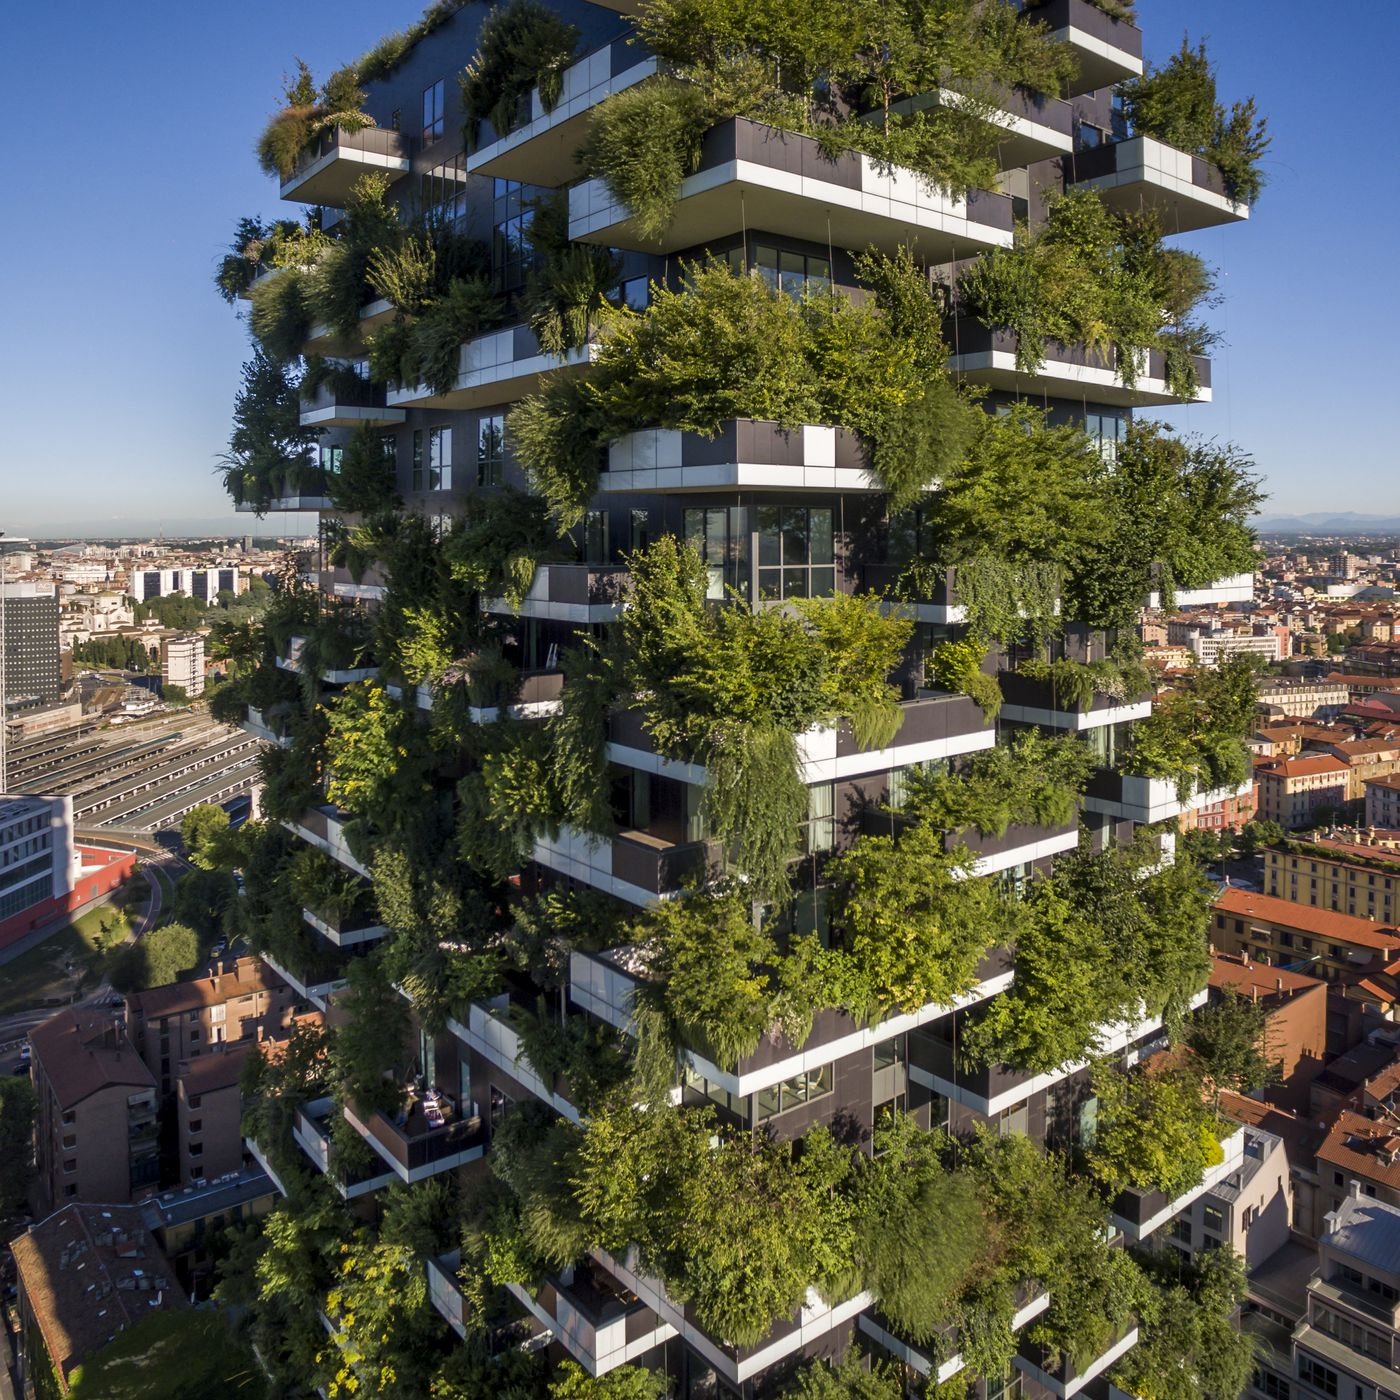 Vertical forests may help solve climate change and housing